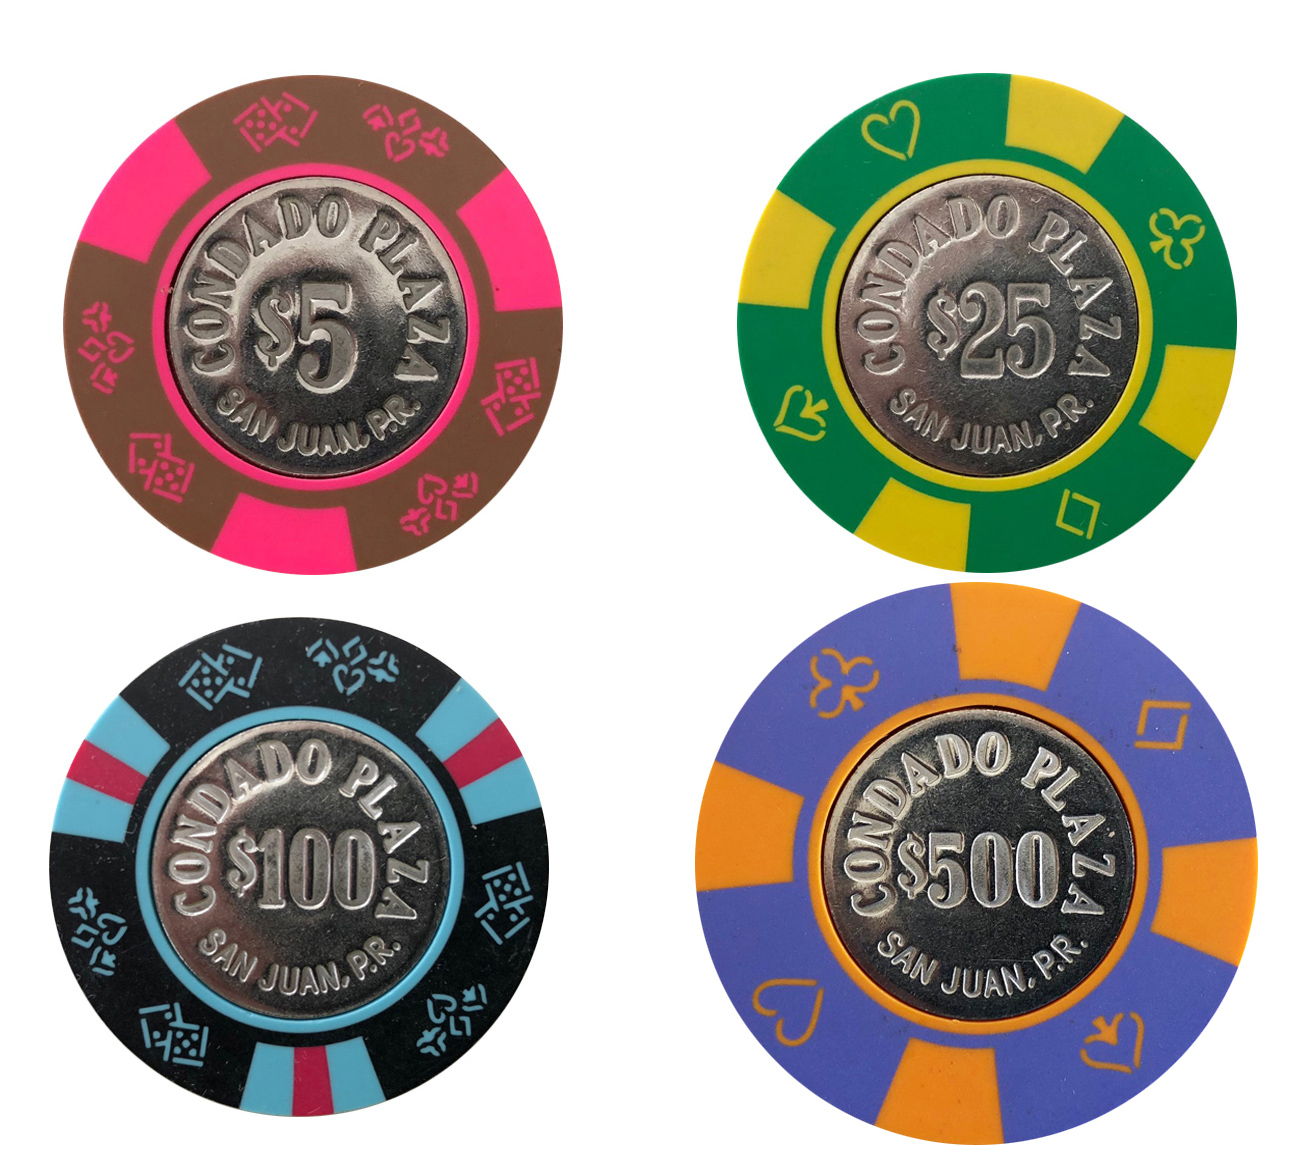 Condado Plaza Casino Bud Jones Poker Chips